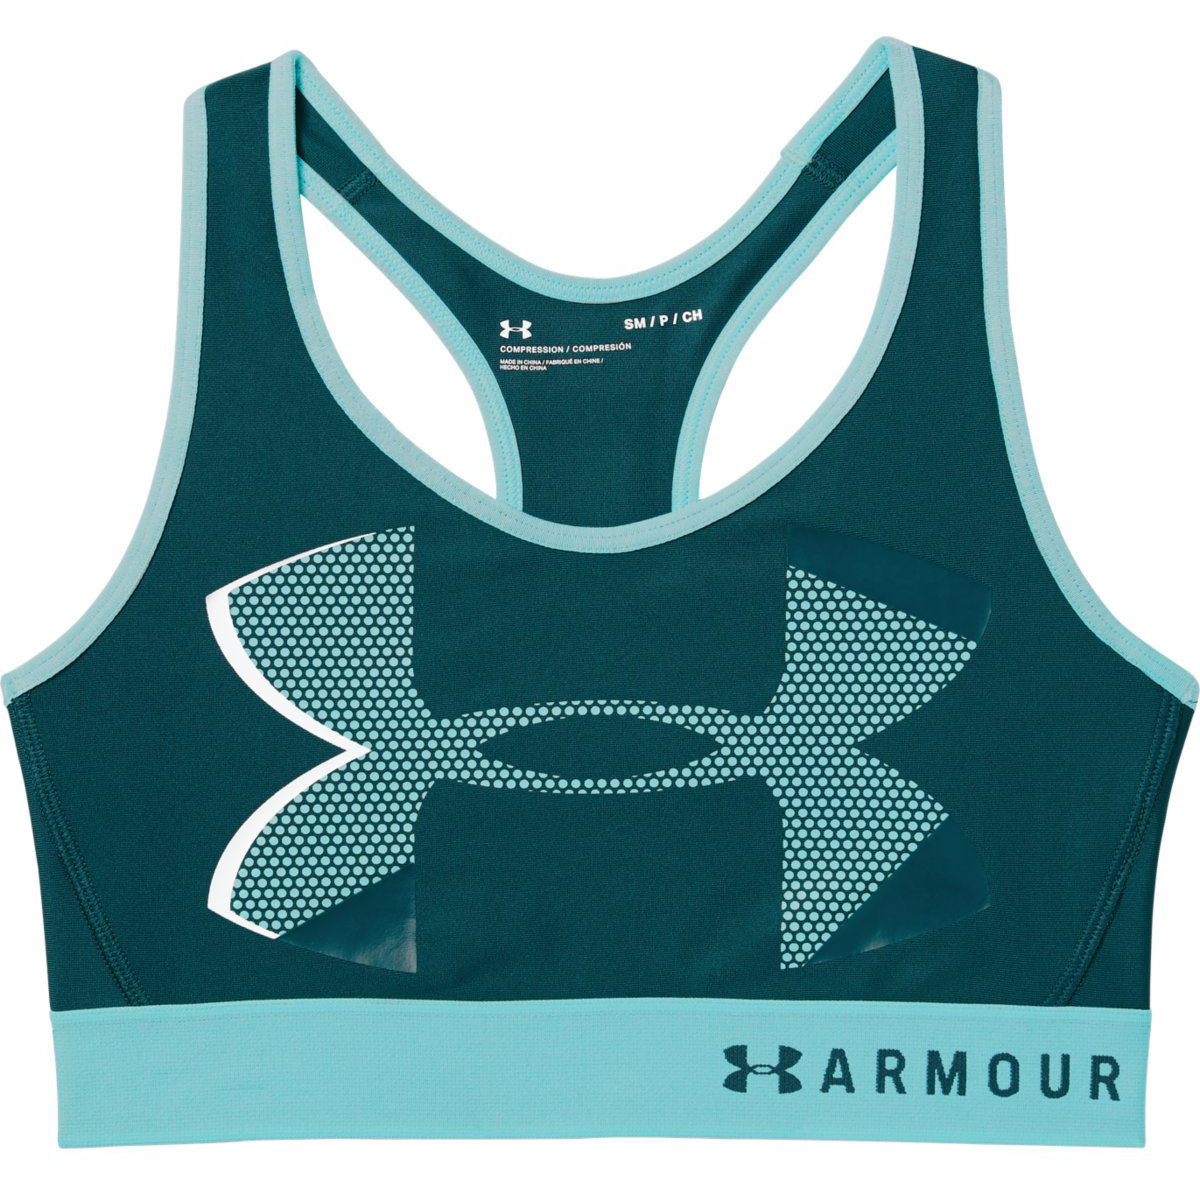 Under Armour Women's Armour Mid Big Logo Sports Bra - Green, XL